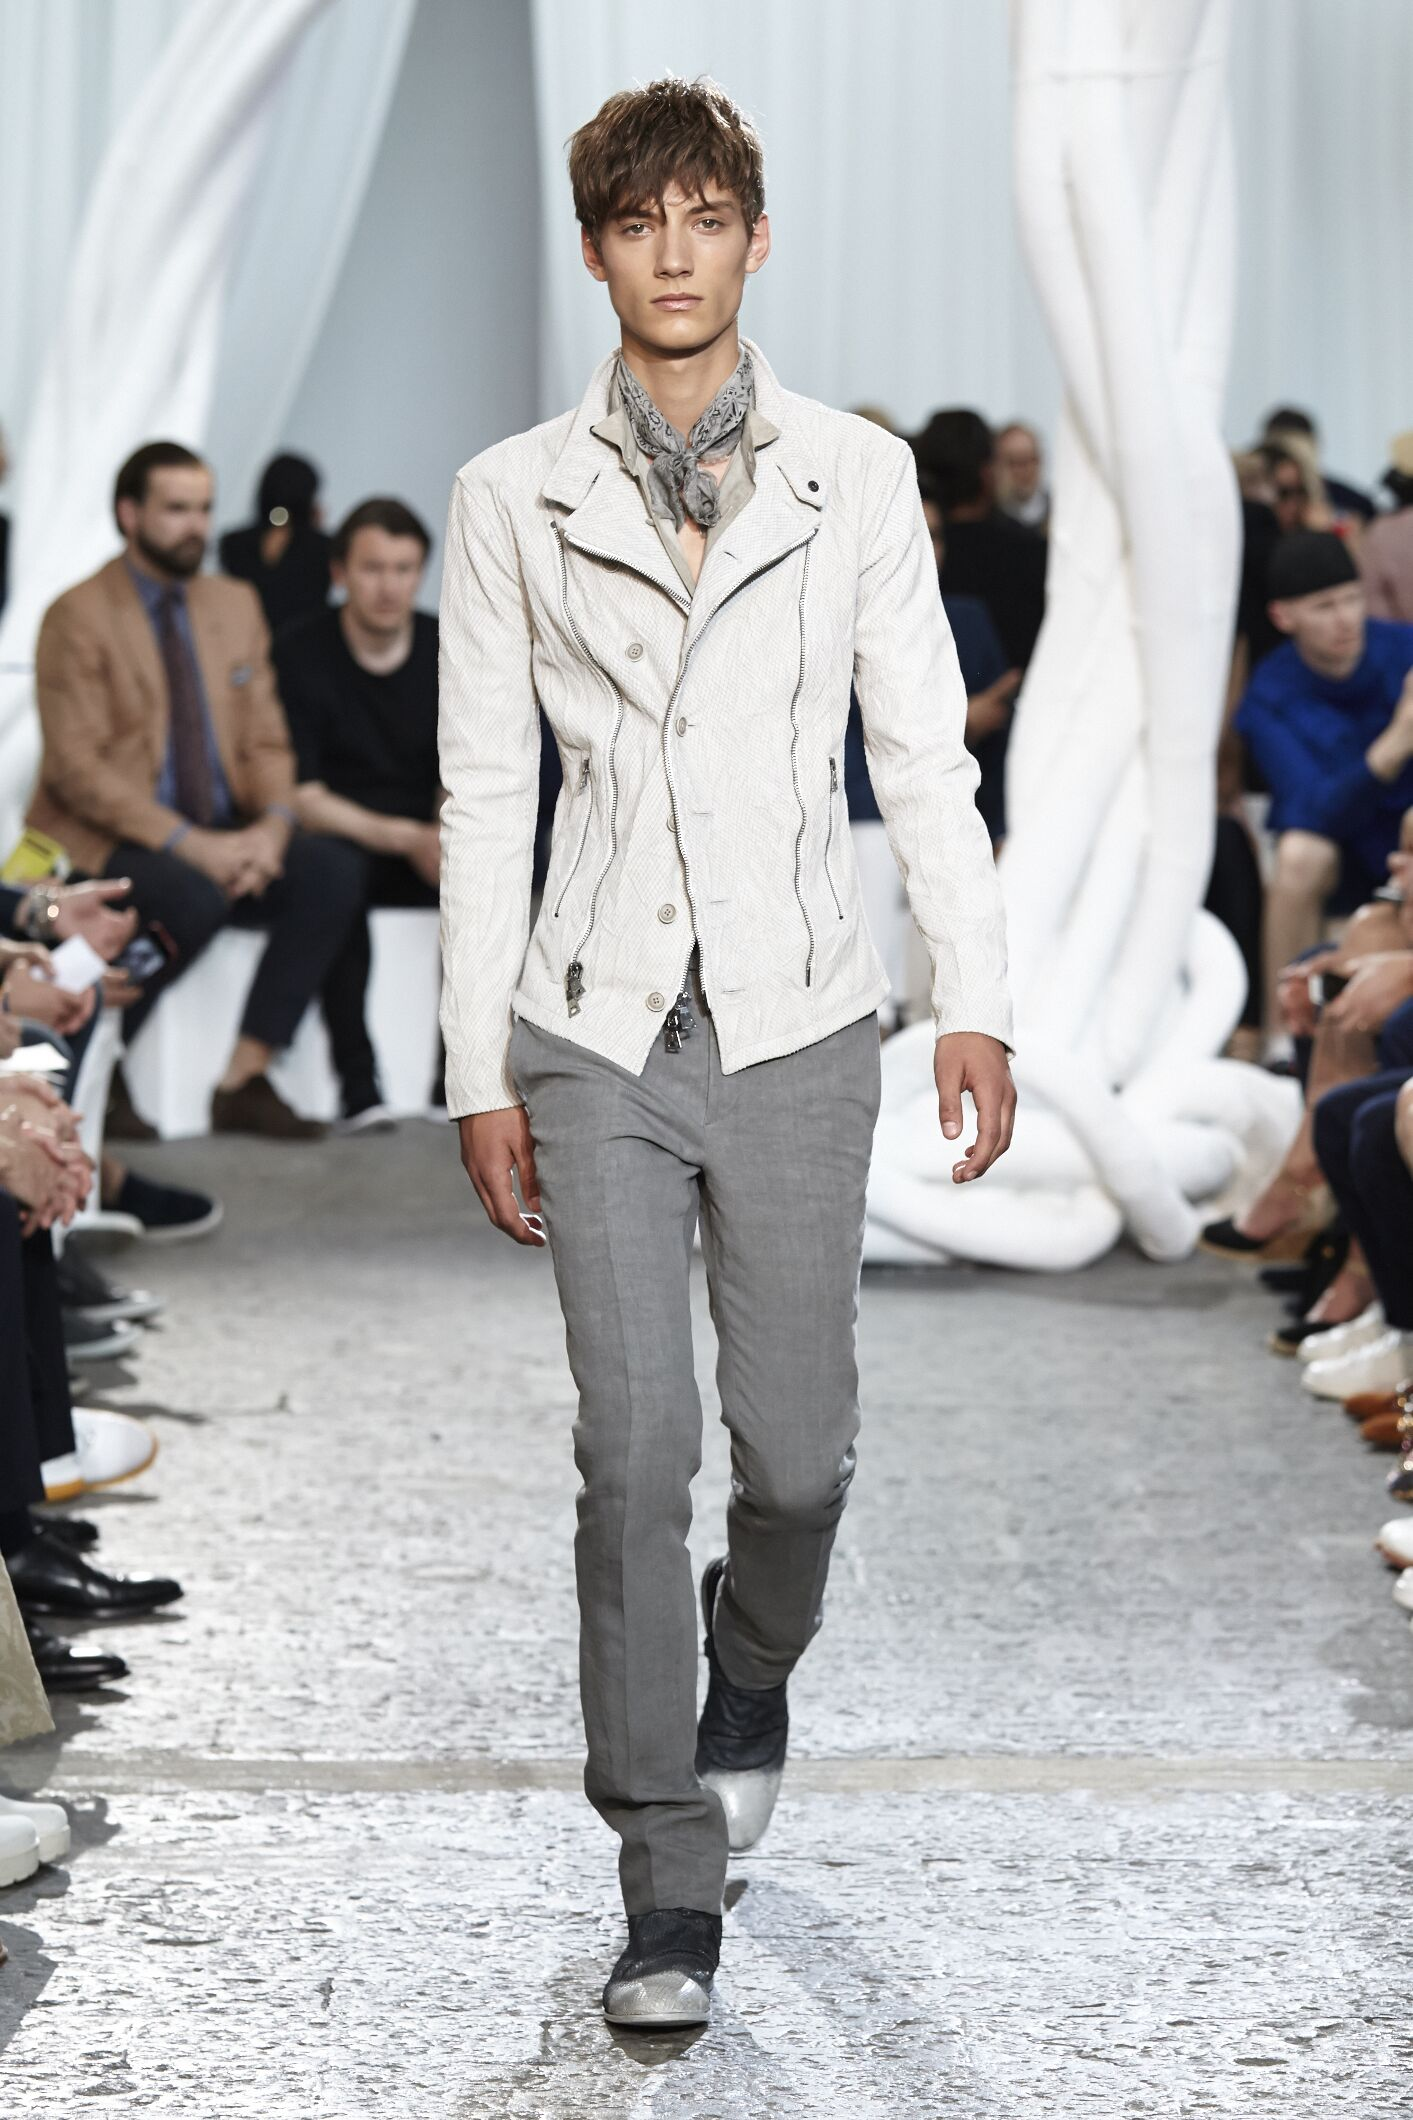 John Varvatos Man 2015